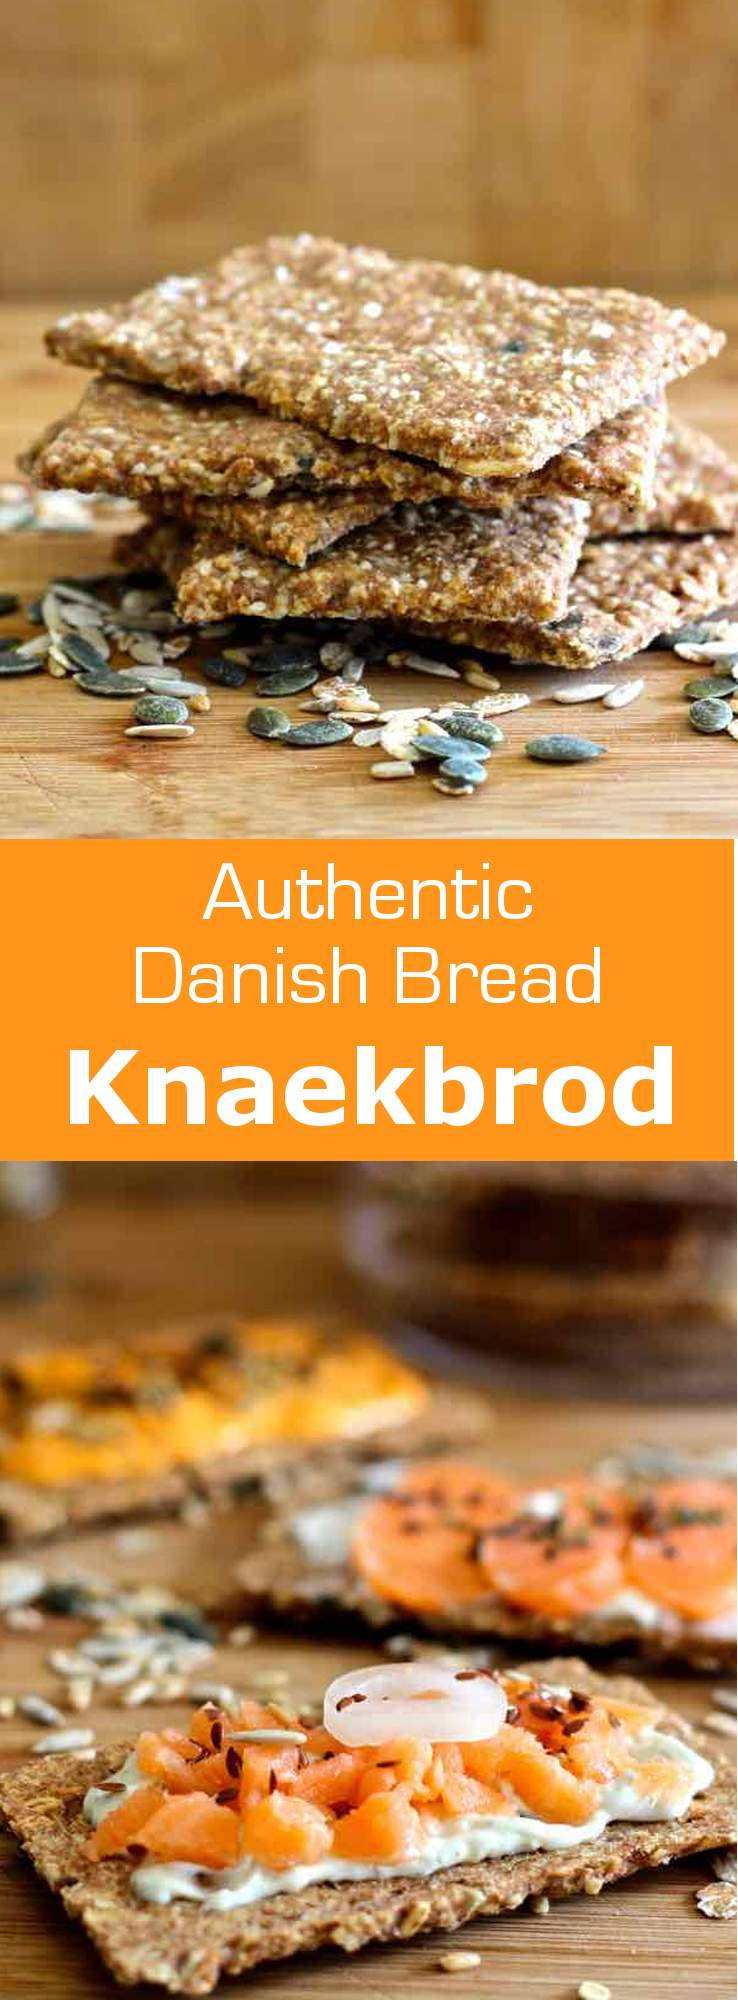 Knækbrød is a rye flour cracker with various seeds widely consumed in Scandinavia, as well as the Netherlands and the UK. #Danish #Swedish #Finnish #Norwegian #Bread #196flavors